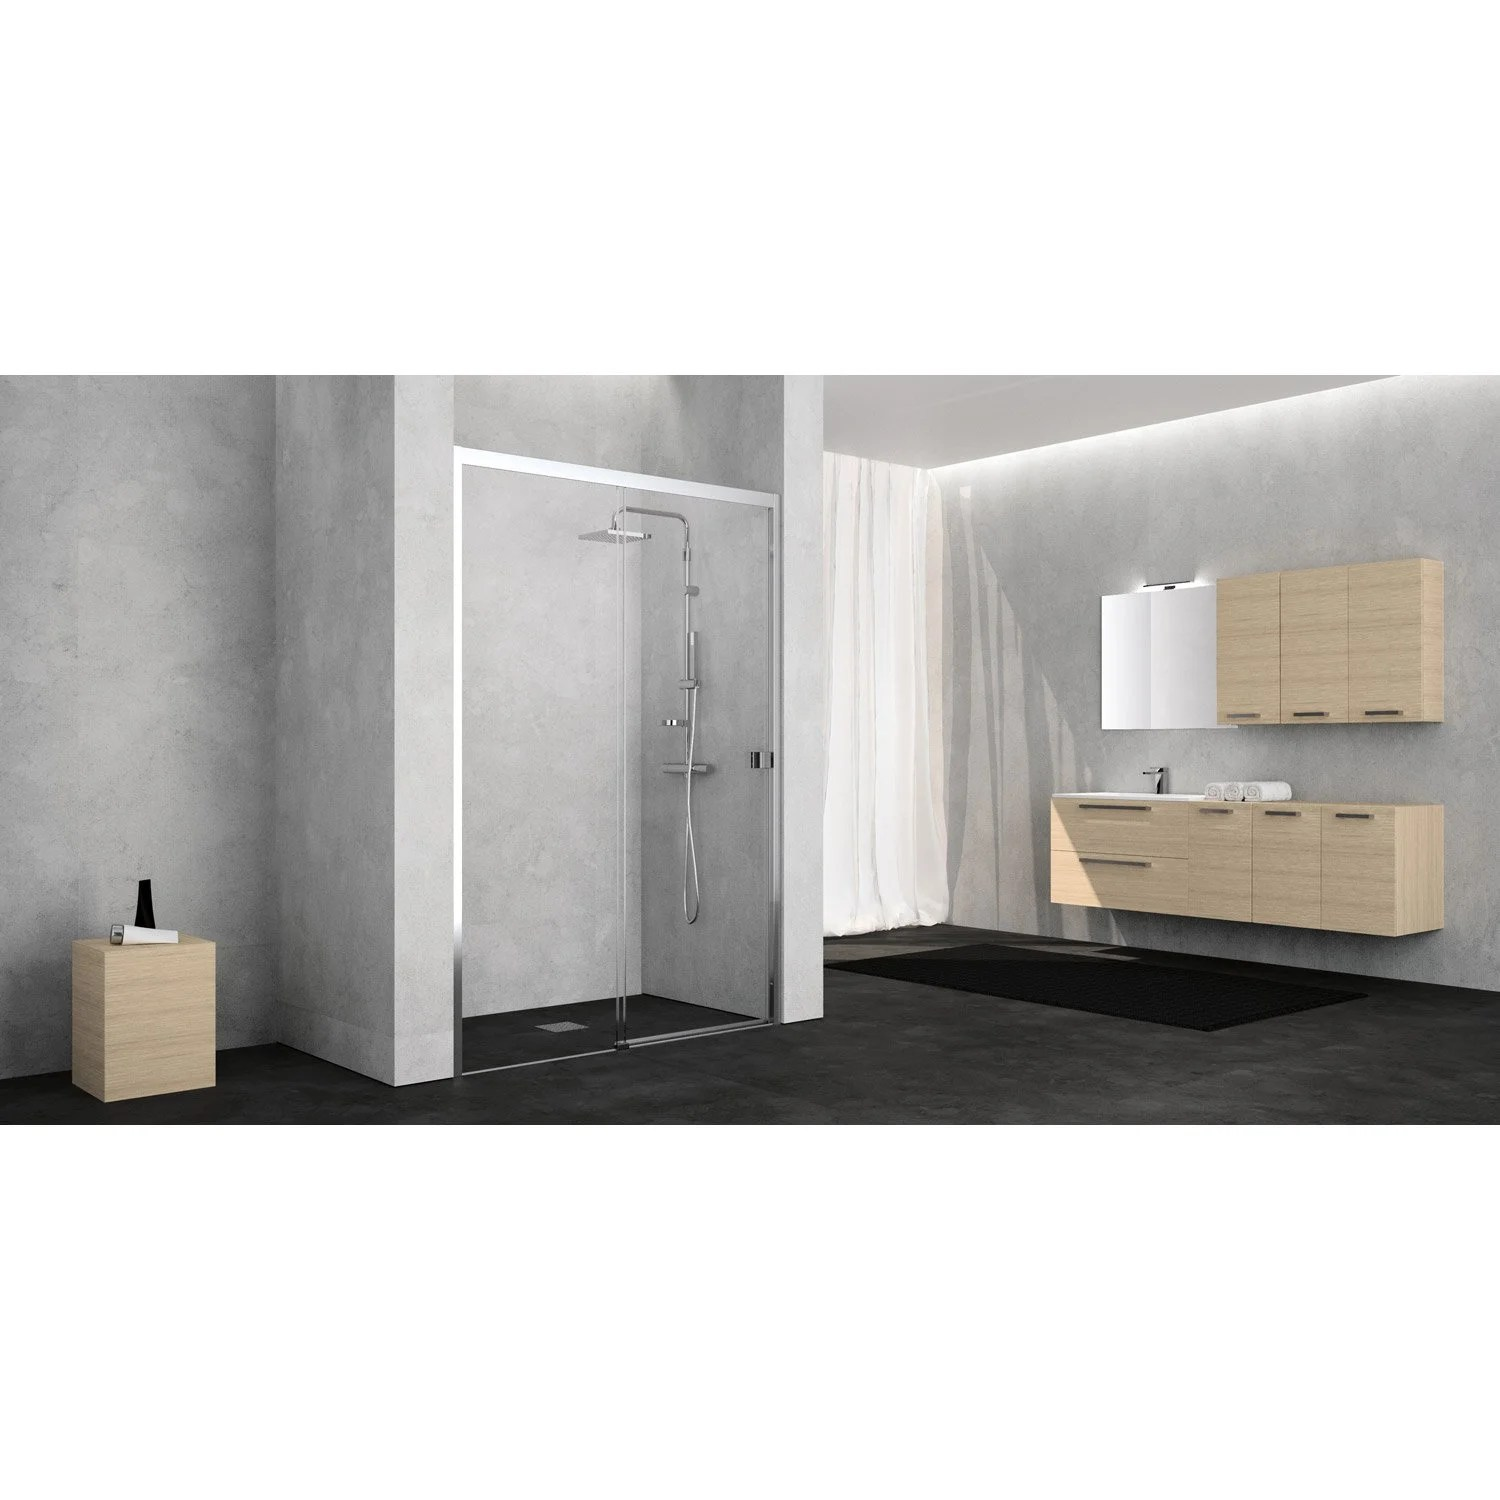 Porte Coulissante Magasin Porte De Douche Coulissante 120 Cm Transparent Neo